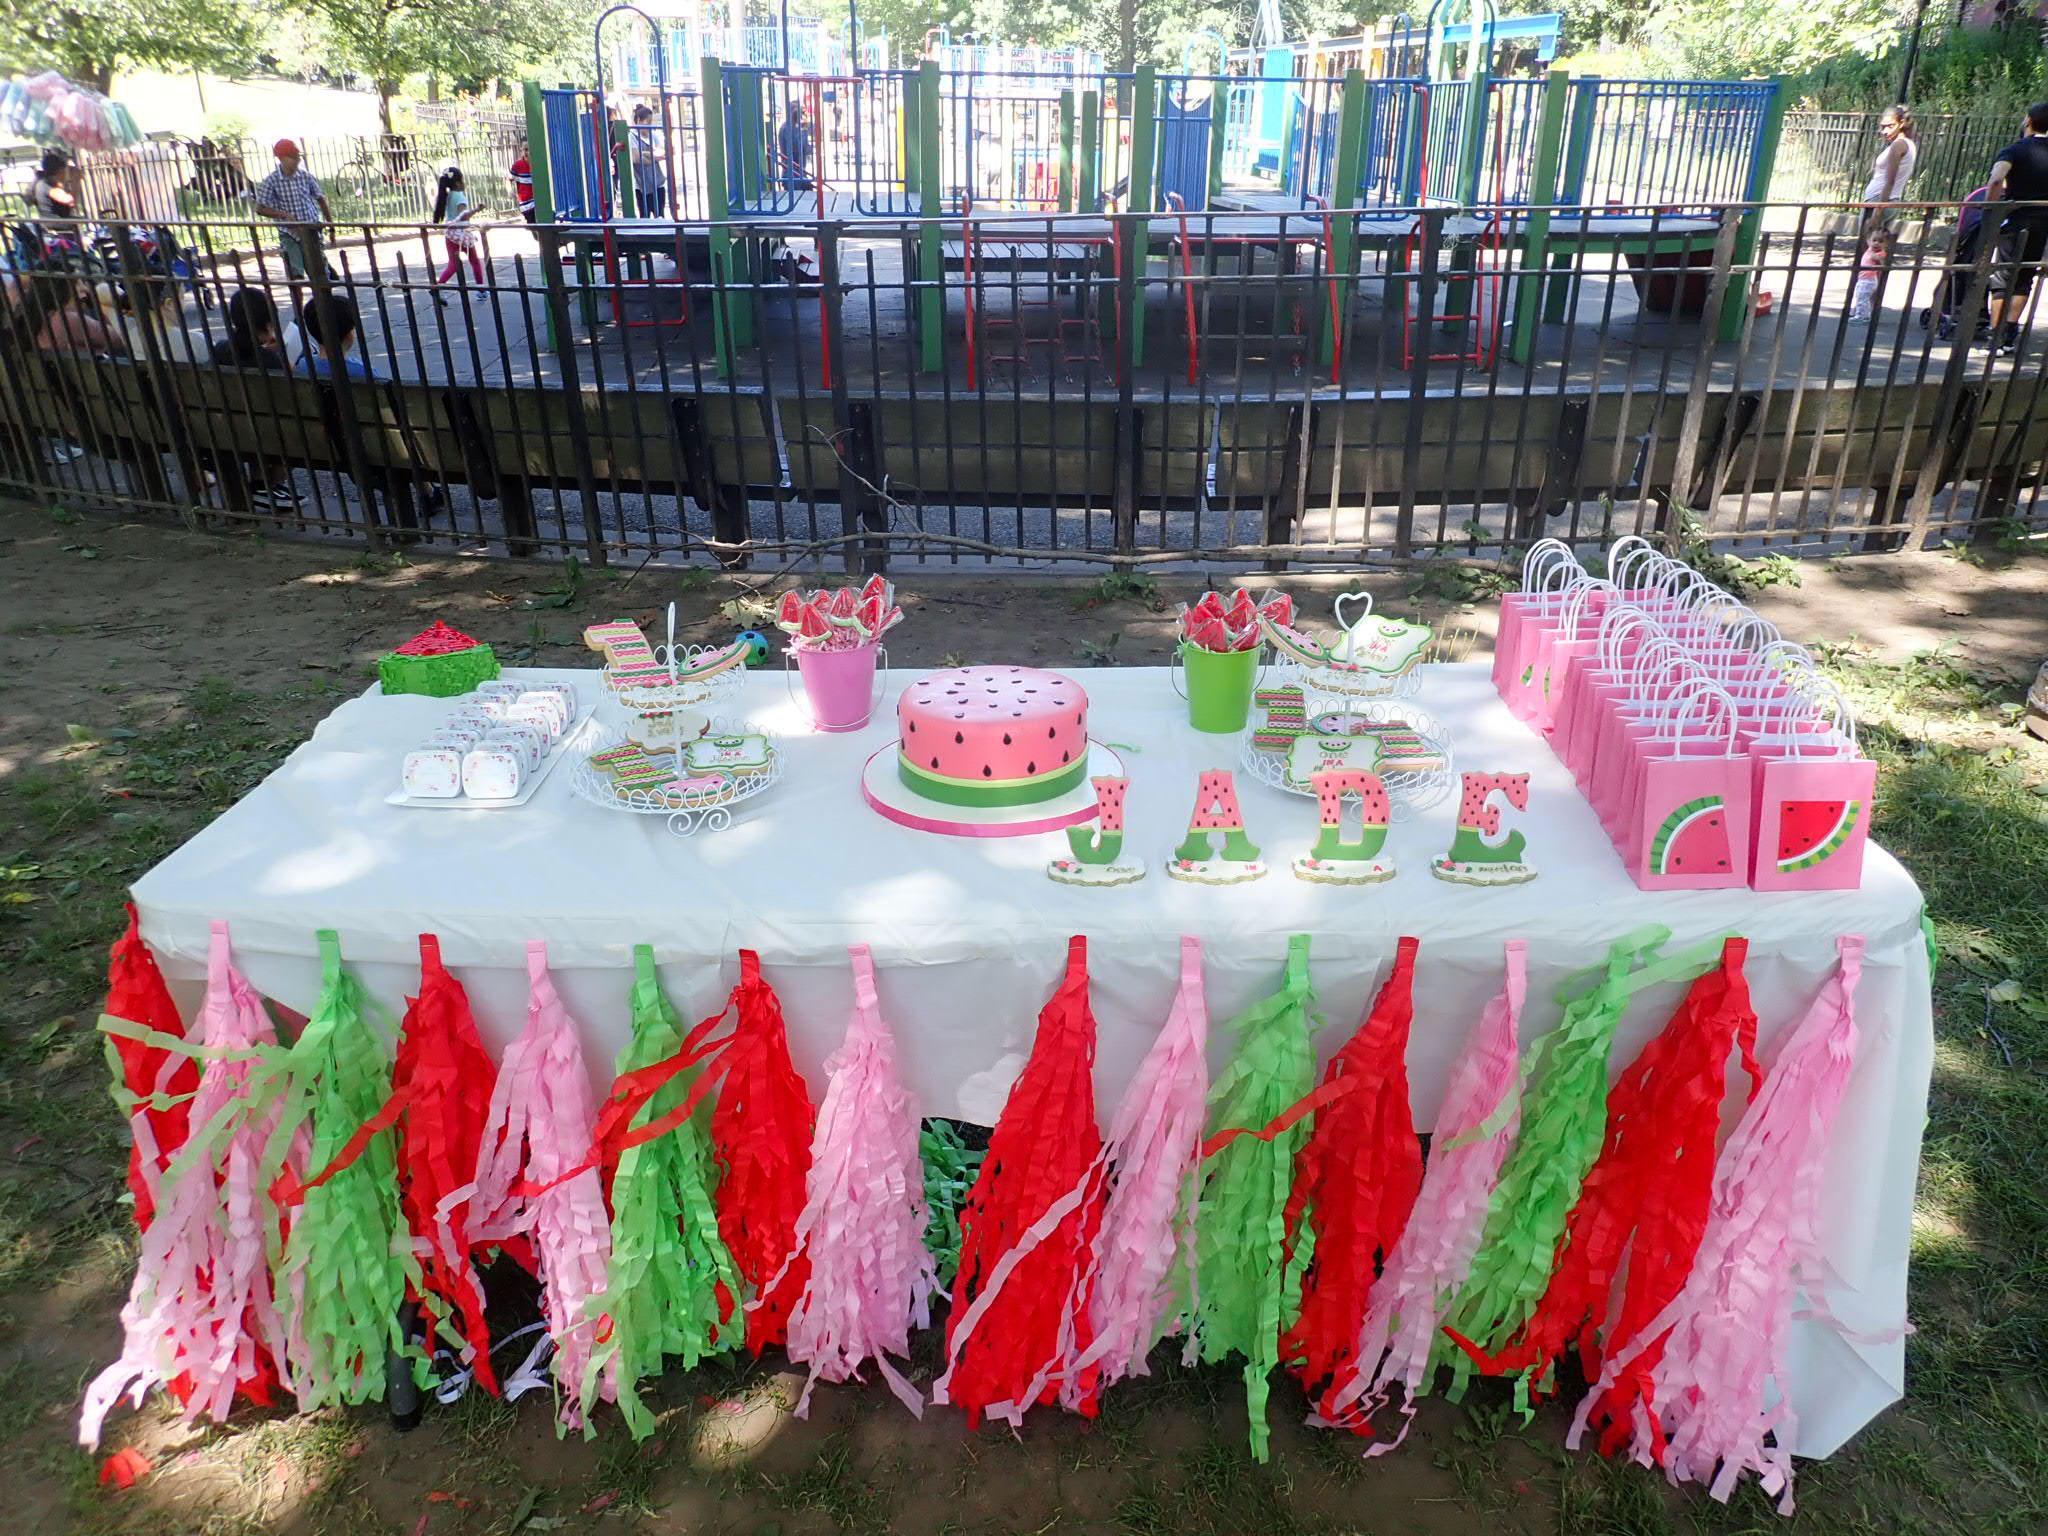 Watermelon DIY goodie bags | One In A Melon Birthday | One In A Melon | Watermelon Birthday Party | Girl First Birthday | One In A Melon goodie bags | watermelon goodie bags | DIY tutu | #watermelonbirthday | #oneinamelon | #girlbirthdayparty | #GirlBirthdayTheme | #WatermelonCake | #DIYtutu | #watermelongoodiebags | AnaJacqueline.com